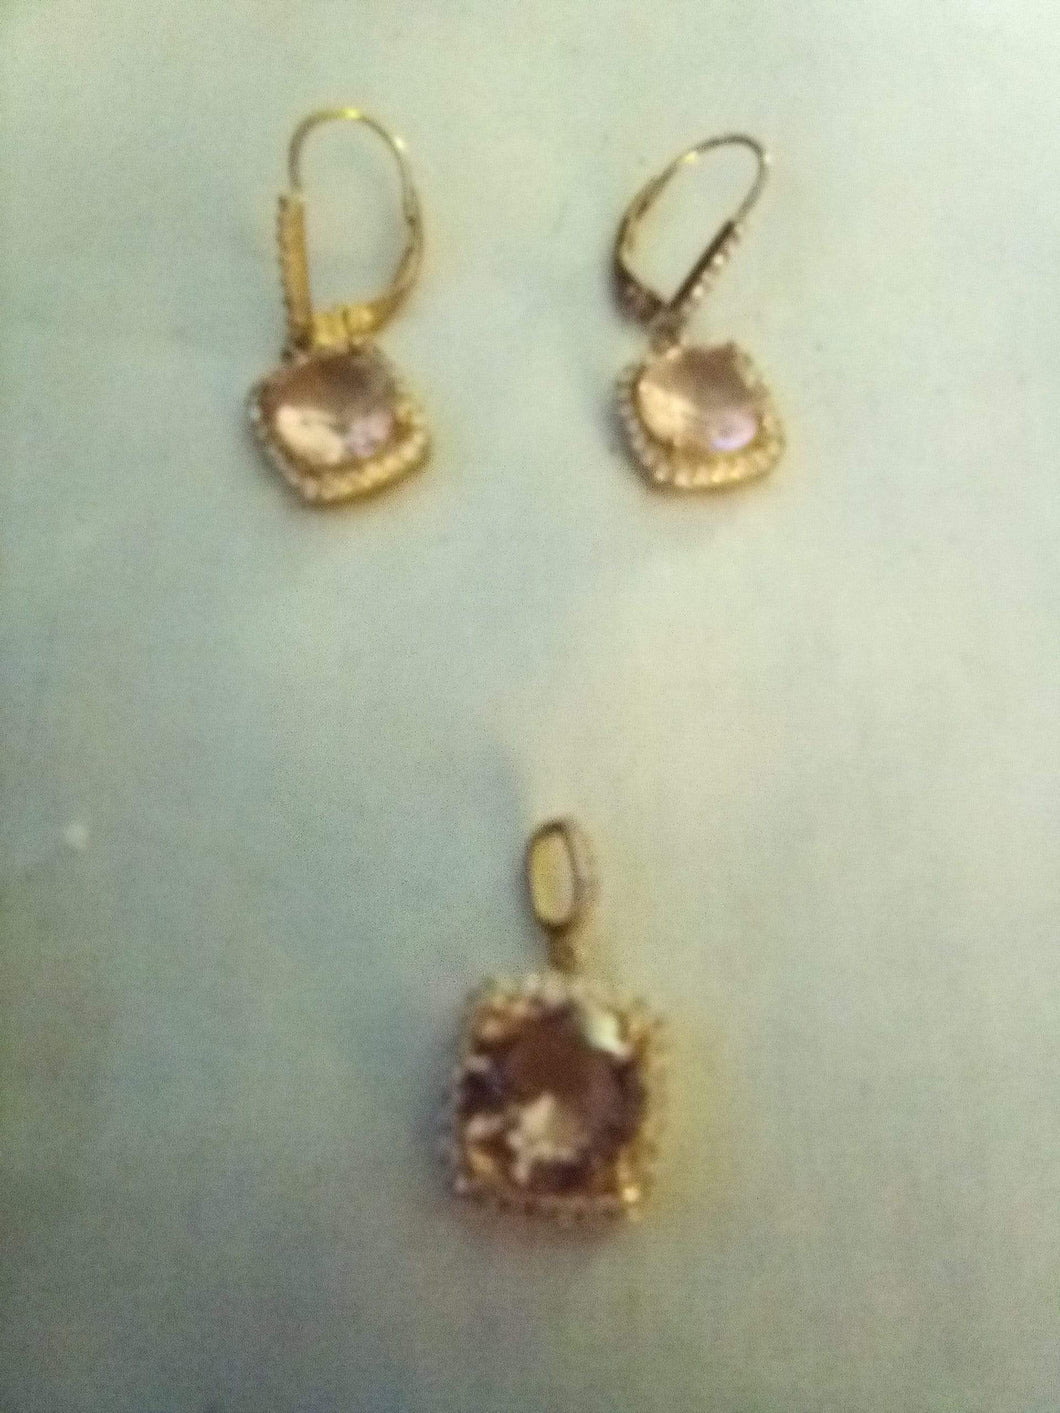 Dressy pendent with matching pair pierced earrings - B&P'sringsnthings